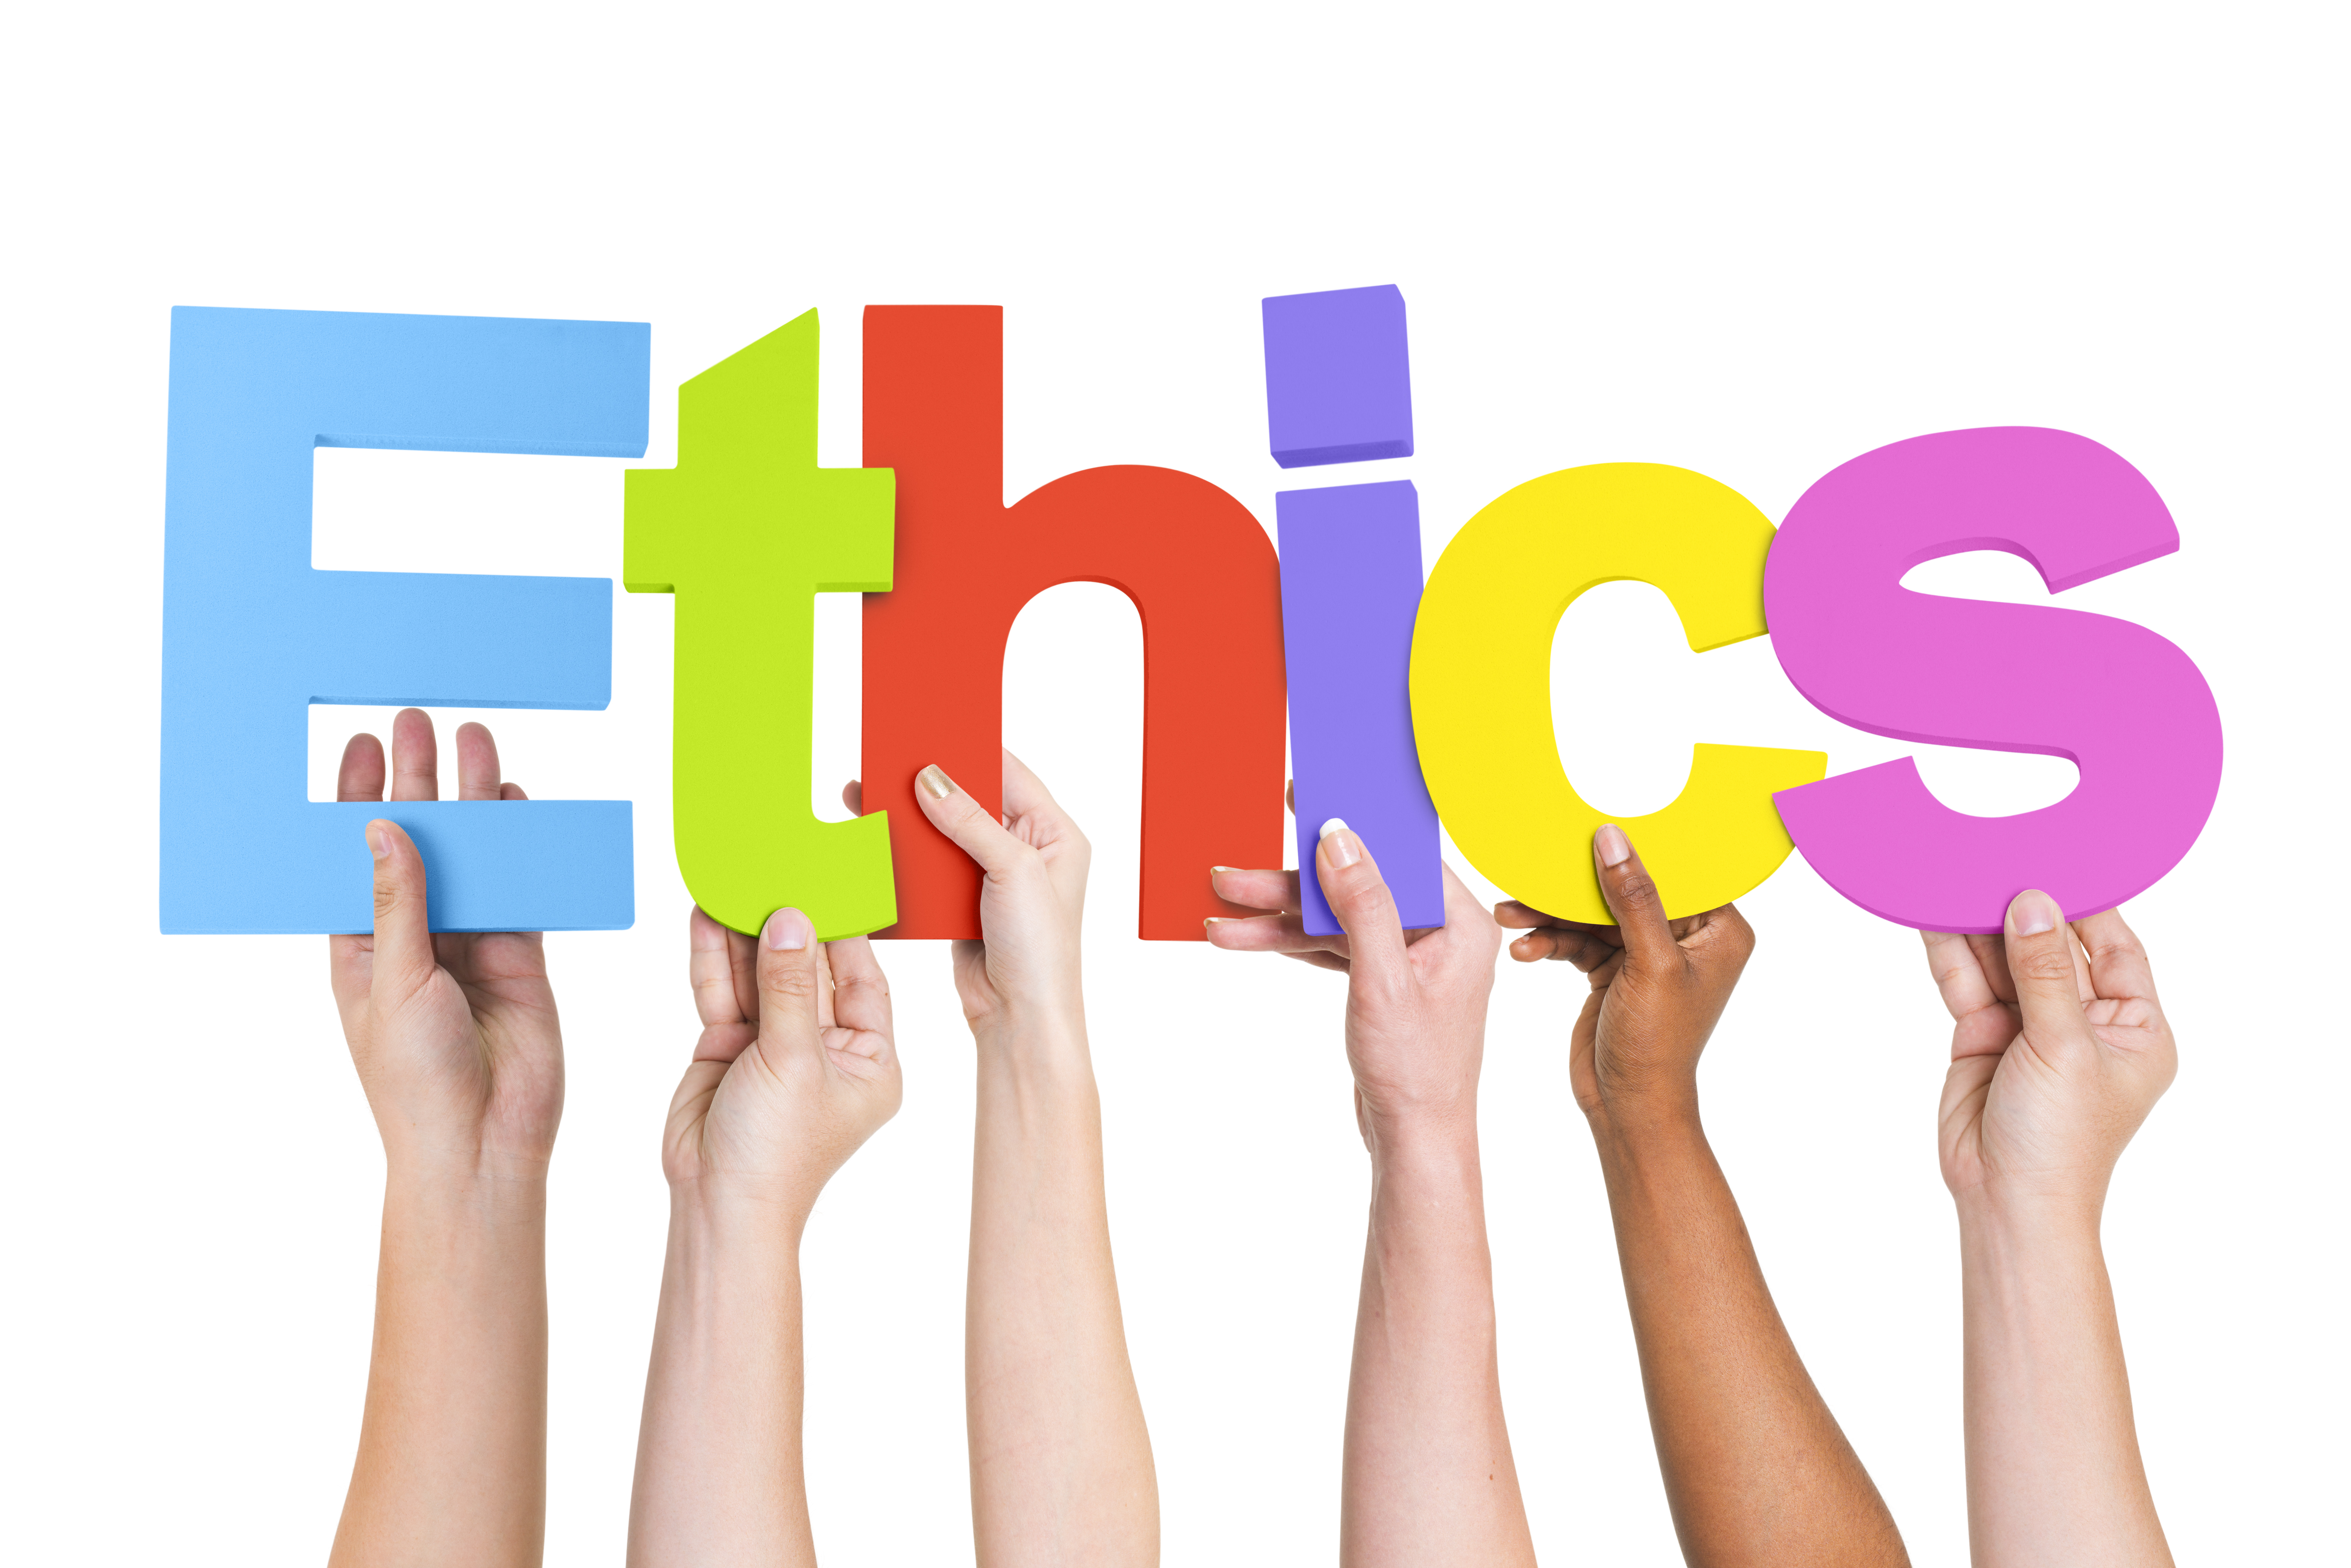 8 ethical principles of global business code of codex These are the sources and citations used to research using three ethical principles of the global business standards codex, evaluate the employment practices of wal-mart.